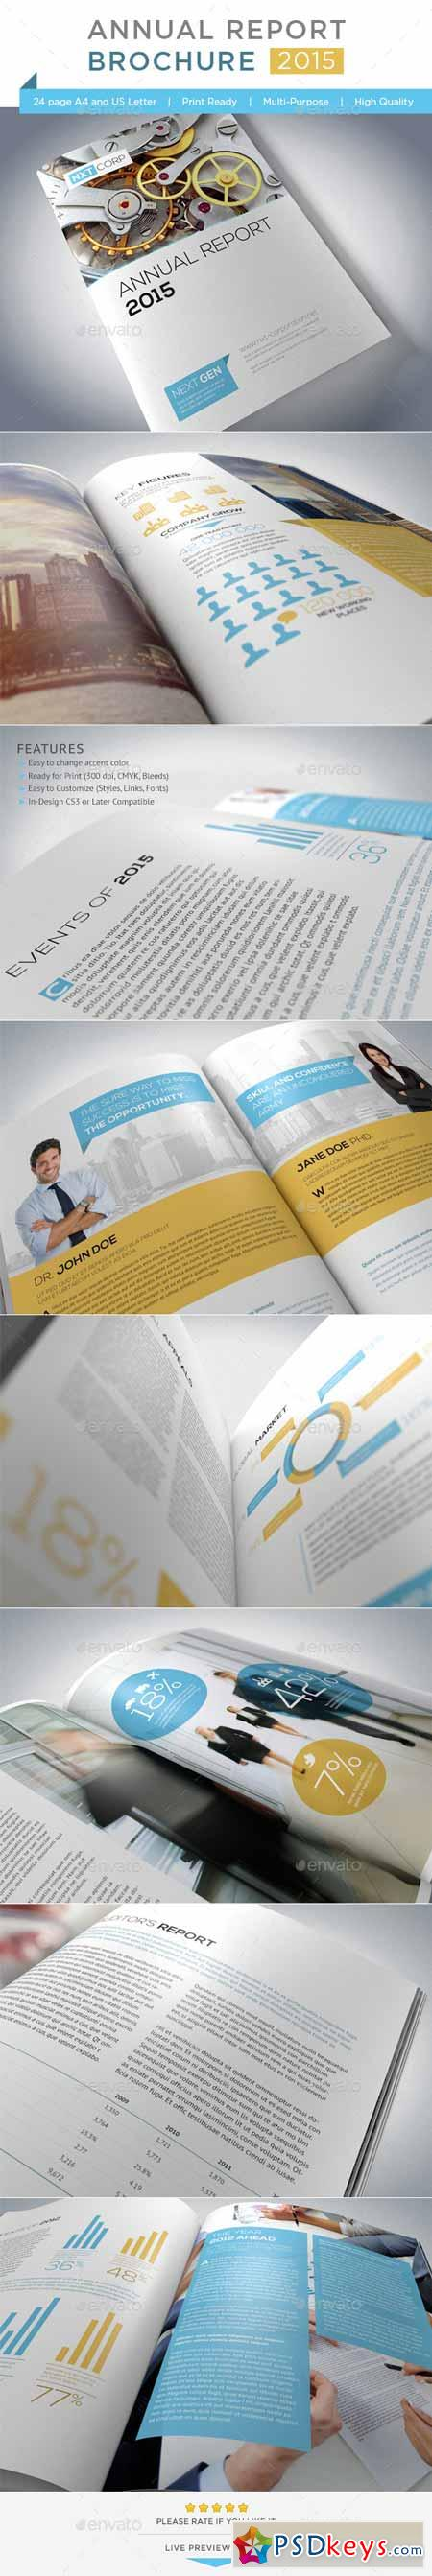 Annual Report Brochure 3068824